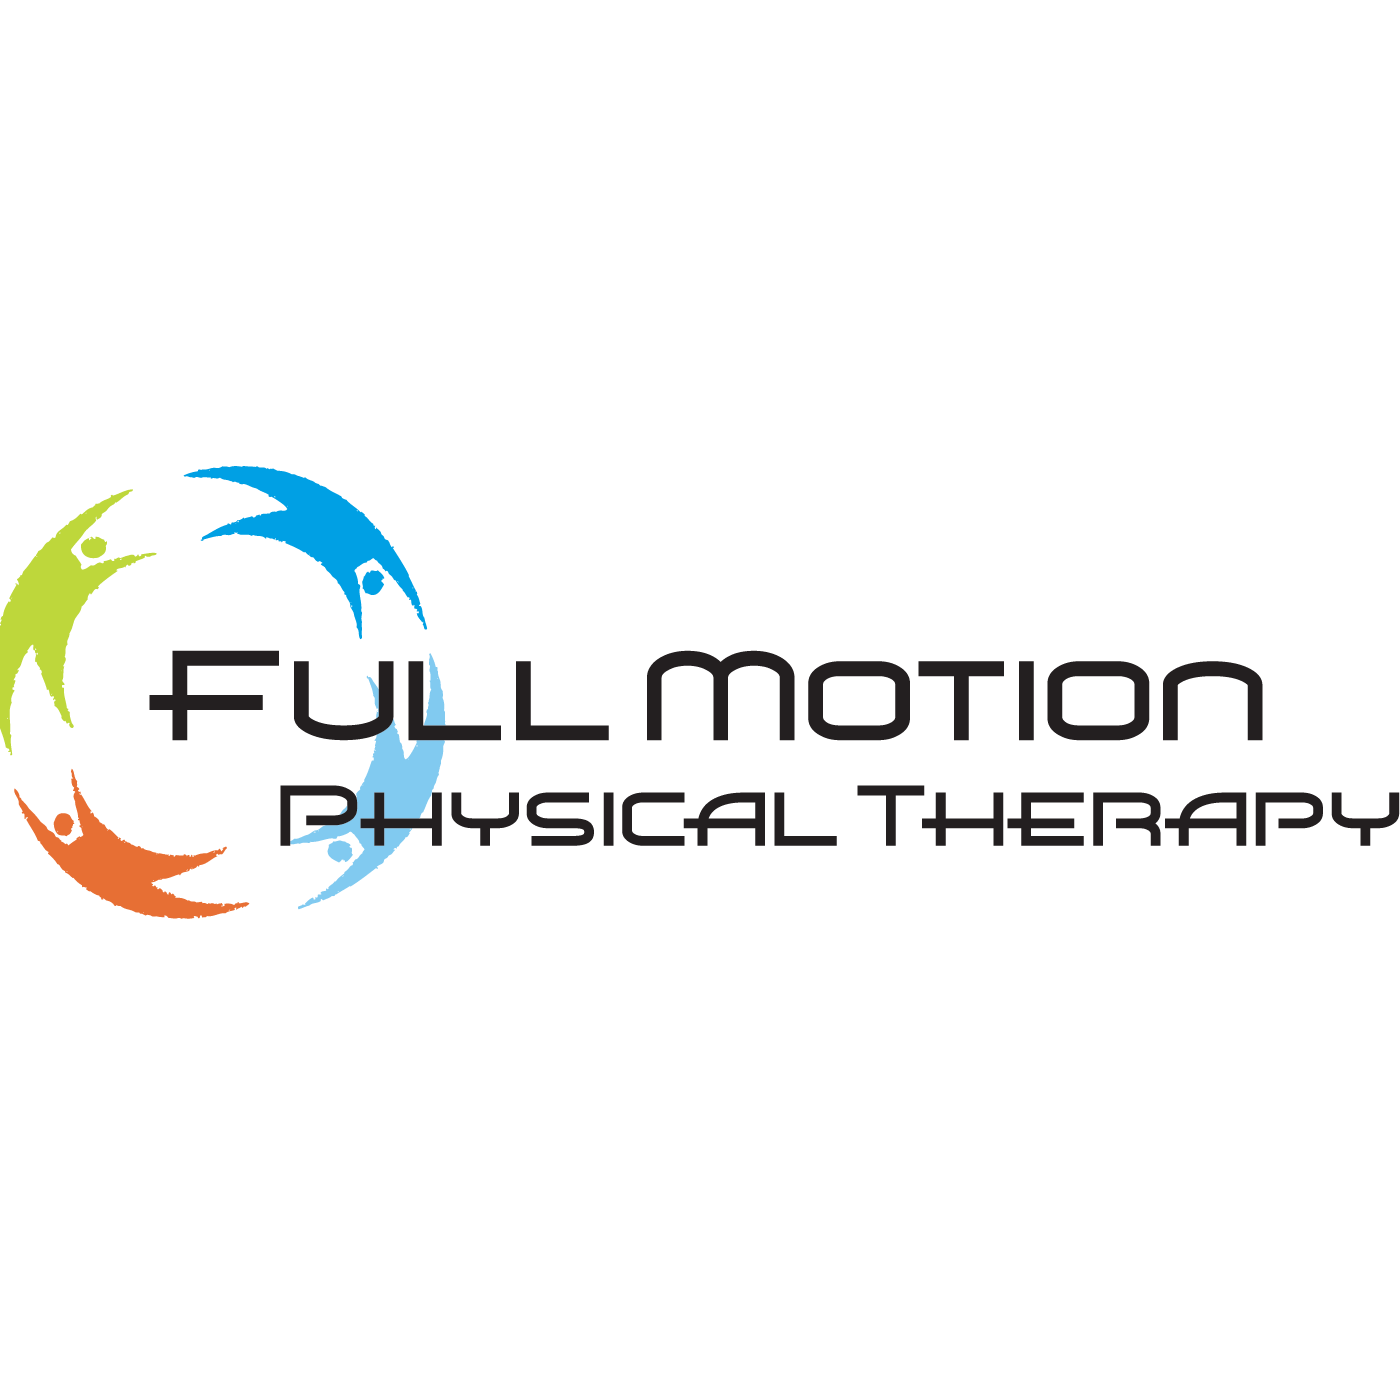 FullMotion Physical Therapy image 4